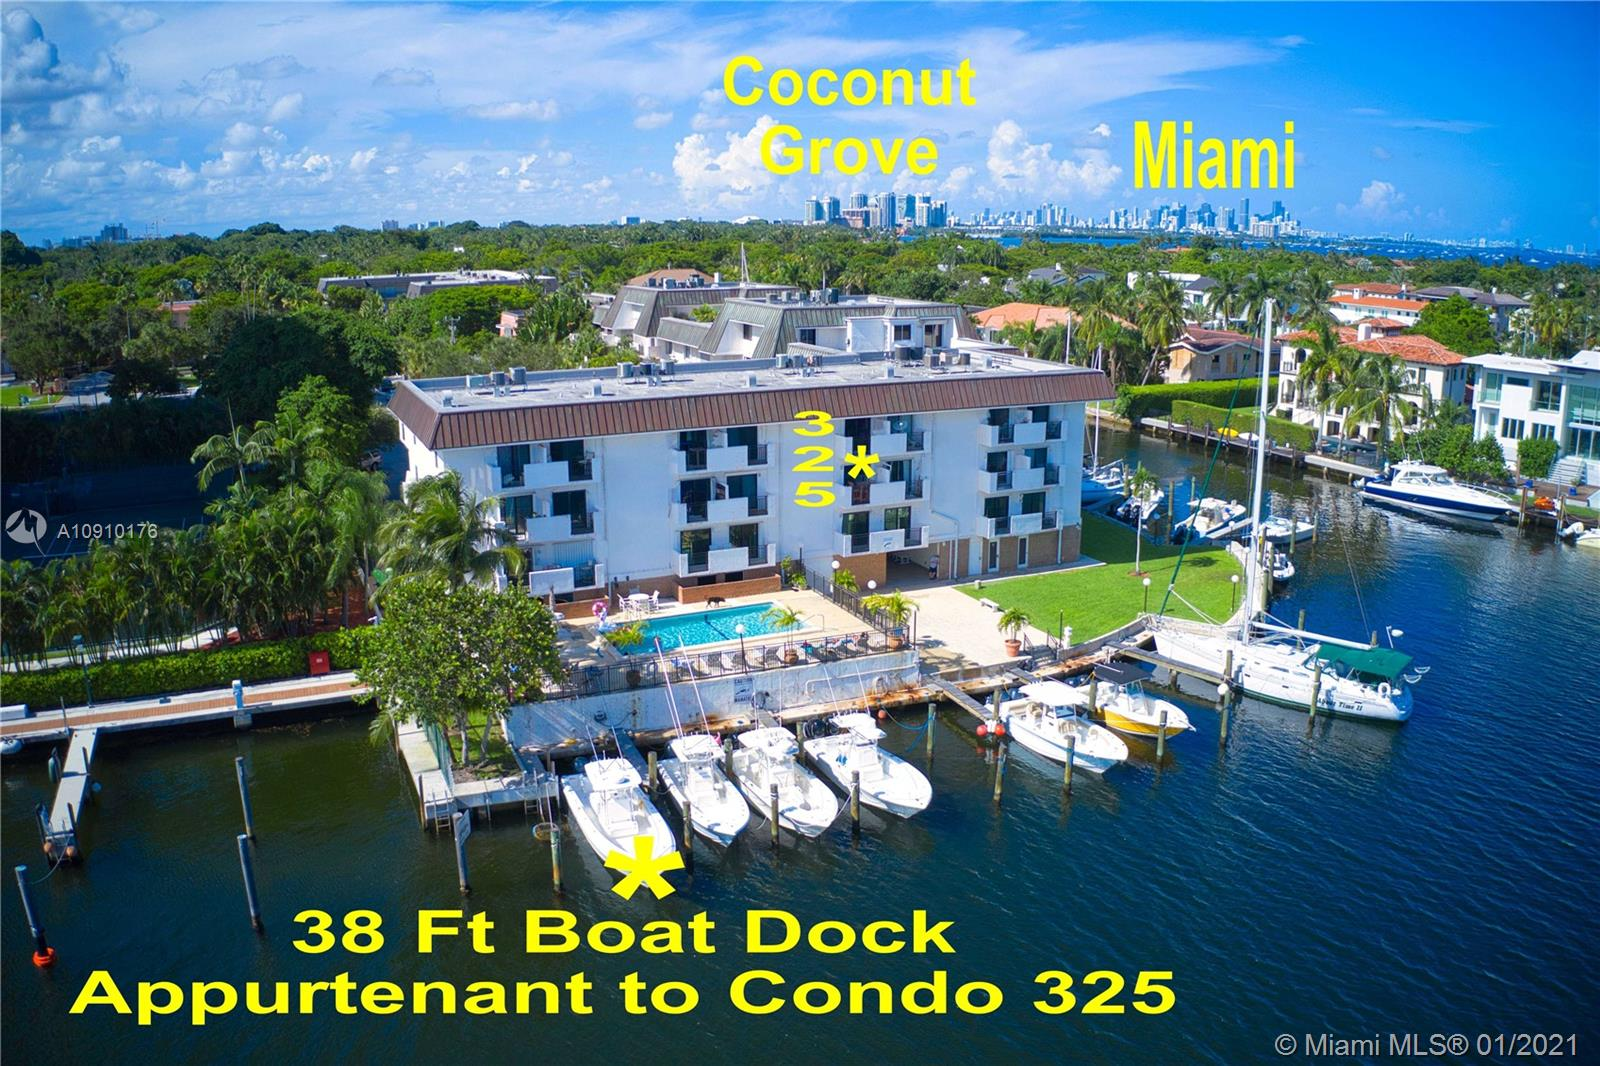 INCOME PRODUCING DEEDED 38 FT BOAT DOCK NO FIXED BRIDEGES LEGALLY RENT TO NON RESIDENTS OF GABLES HARBOUR. Edgewater Drive Convenient to Coral Gables, Coconut Grove, Miami. Beautifully Renovated 2 Story 2BR/2.5BA Condo. Each Bedroom has an En Suite Full Bath. Half Bath Downstairs. Gorgeous Modern Kitchen, Quartz Countertops, Custom Island, Stainless Steel Appliances-Lighted Exhaust Hood, Glass Tile Backsplash, Beautiful Custom White Cabinets, Custom LED Lighting. Spectacular Master Bedroom, Covered Balcony, Fantastic Canal-Bay Water Vistas. Gorgeous Modern Master Bath. Second Bedroom with an En Suite Full Bath. Gulfstream-Reef Fishing-Diving in Minutes. Pool, Community Room-Kitchen, Private Storage Locker, Bike, Paddle Board Storage. New AC System 2019. Rare Opportunity Deeded 38 Ft. Dock.